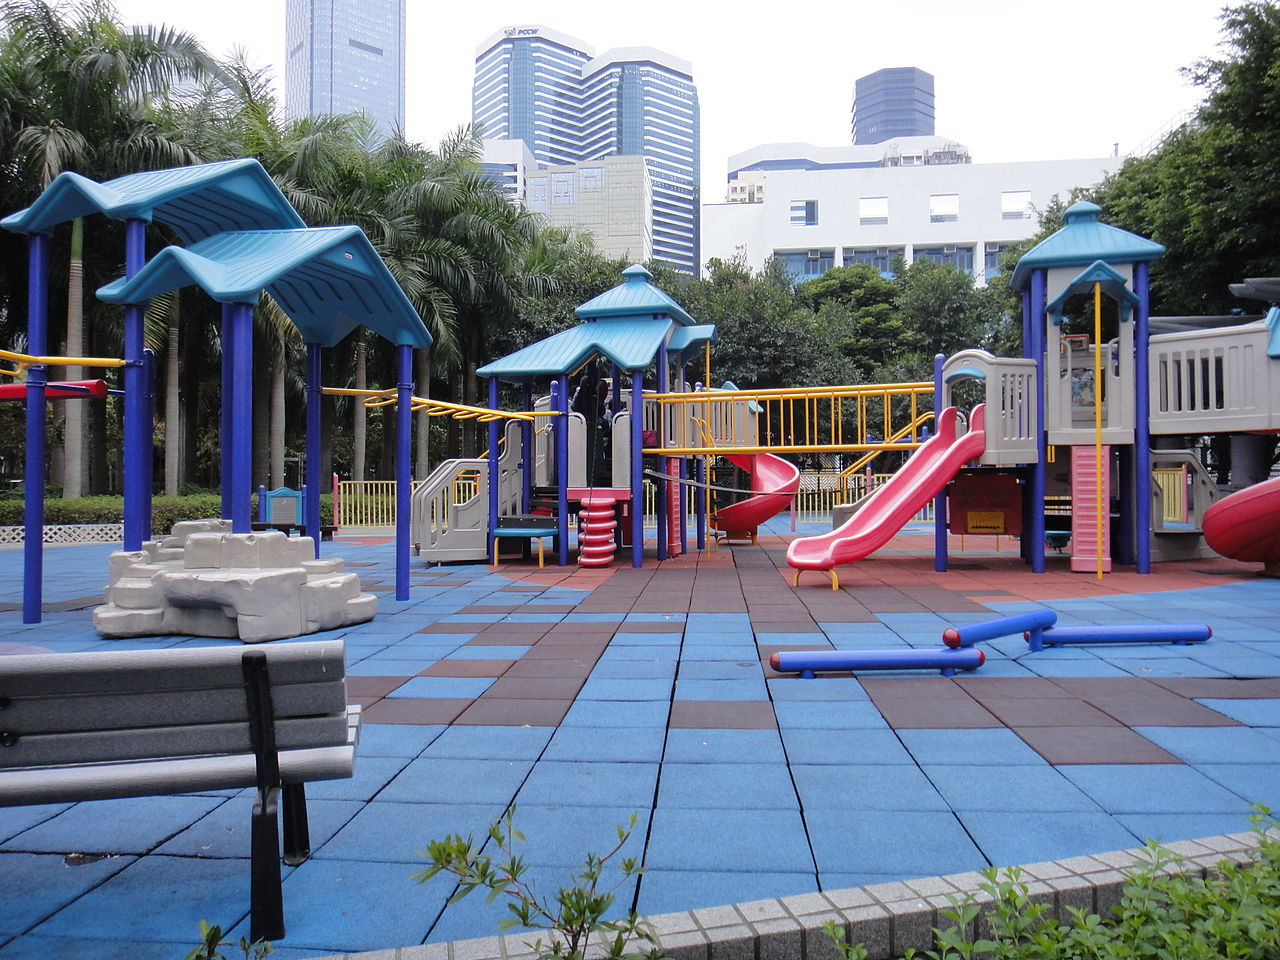 File Quarry Bay Park Children Play Area Jpg Wikipedia